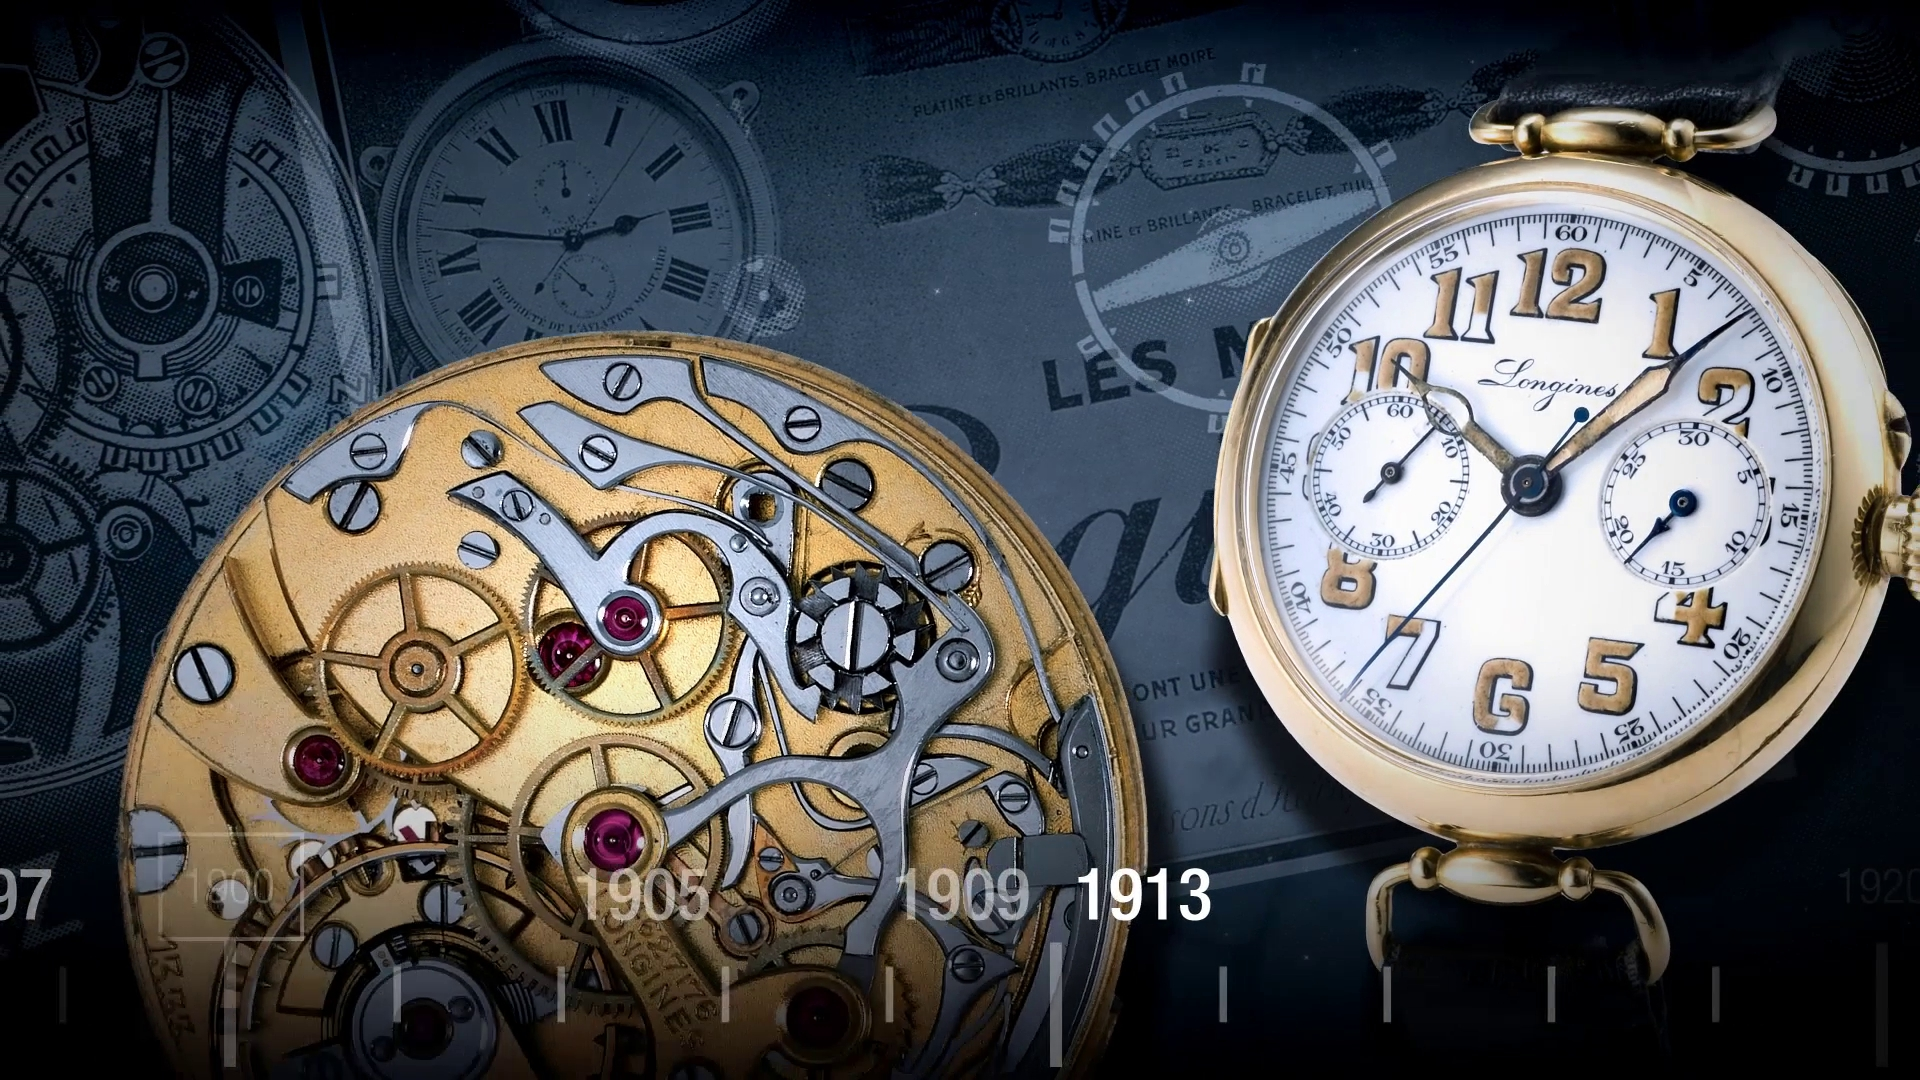 3DVISION NYVALIS 2016 LONGINES Chronograph Tradition 03